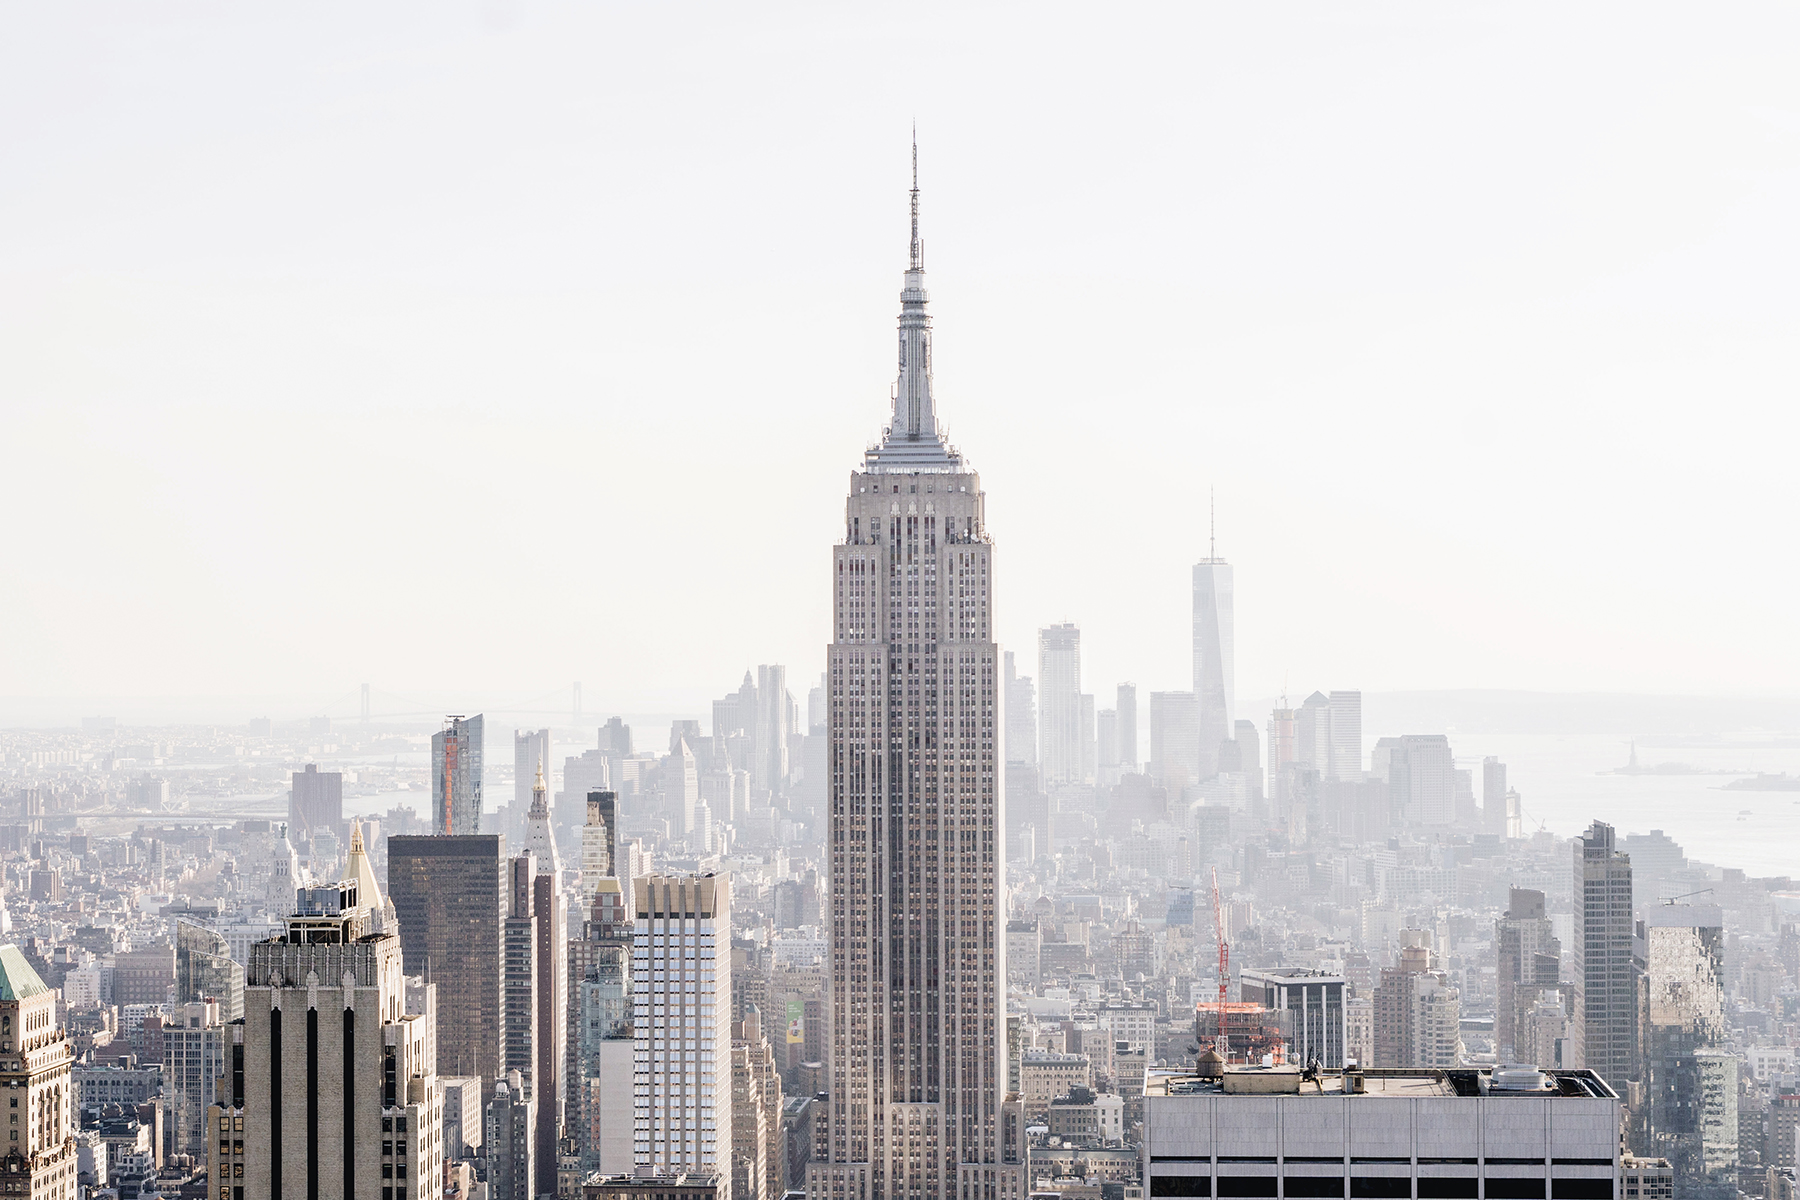 Top of the Rock view of the Empire State Building - Top 10 things to do in NYC with young kids | New York City travel guide